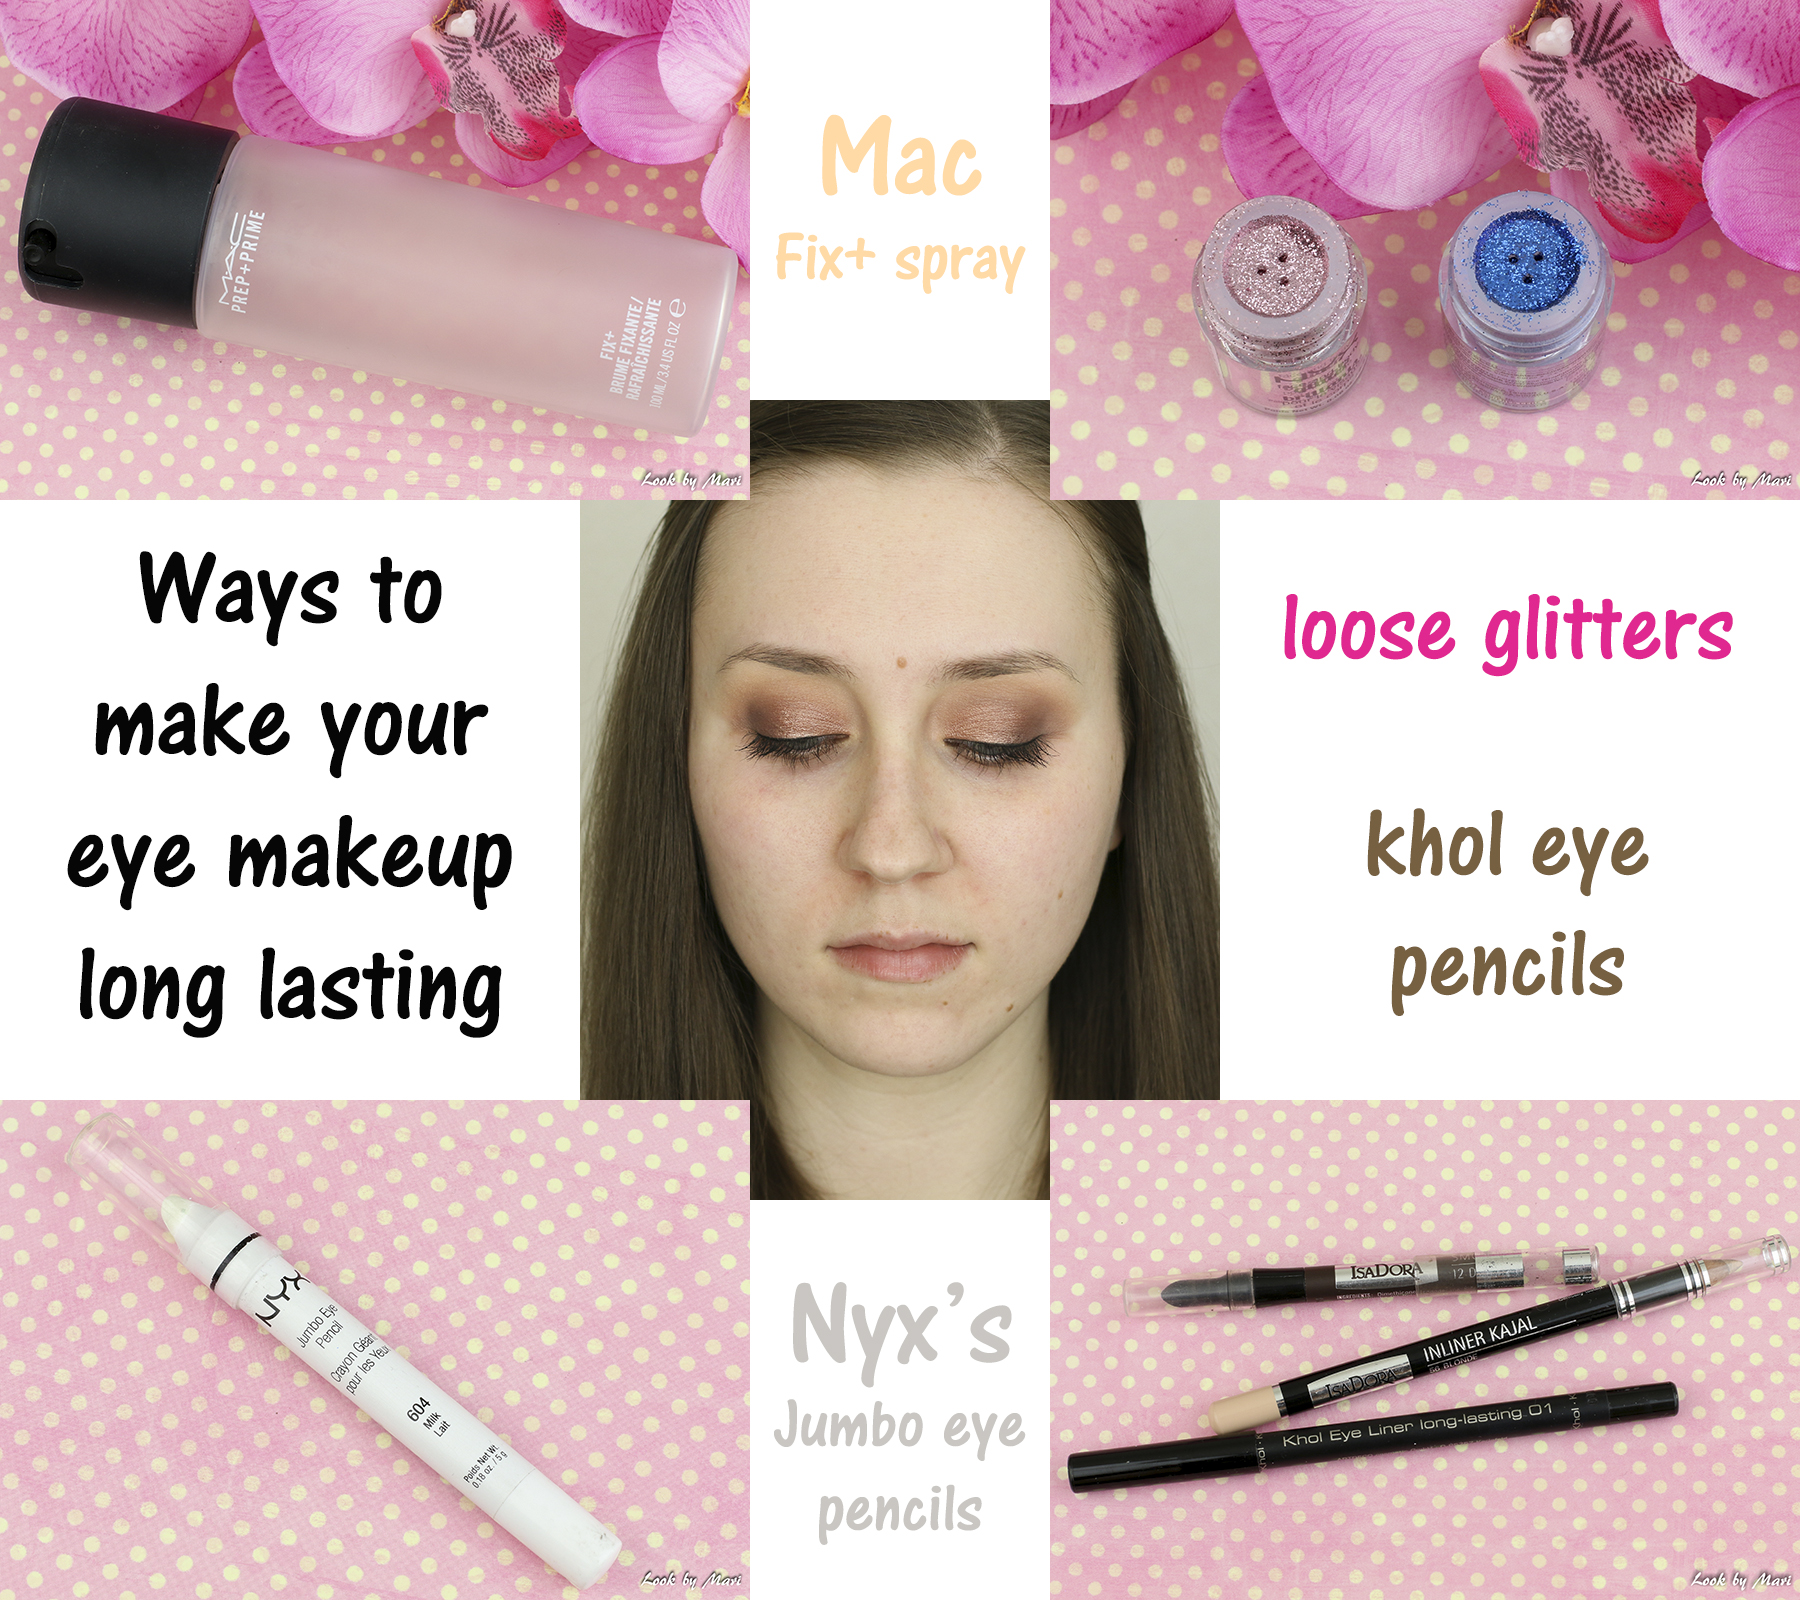 4 long lasting eye makeup tips ideas tutorial mac fix + spray review